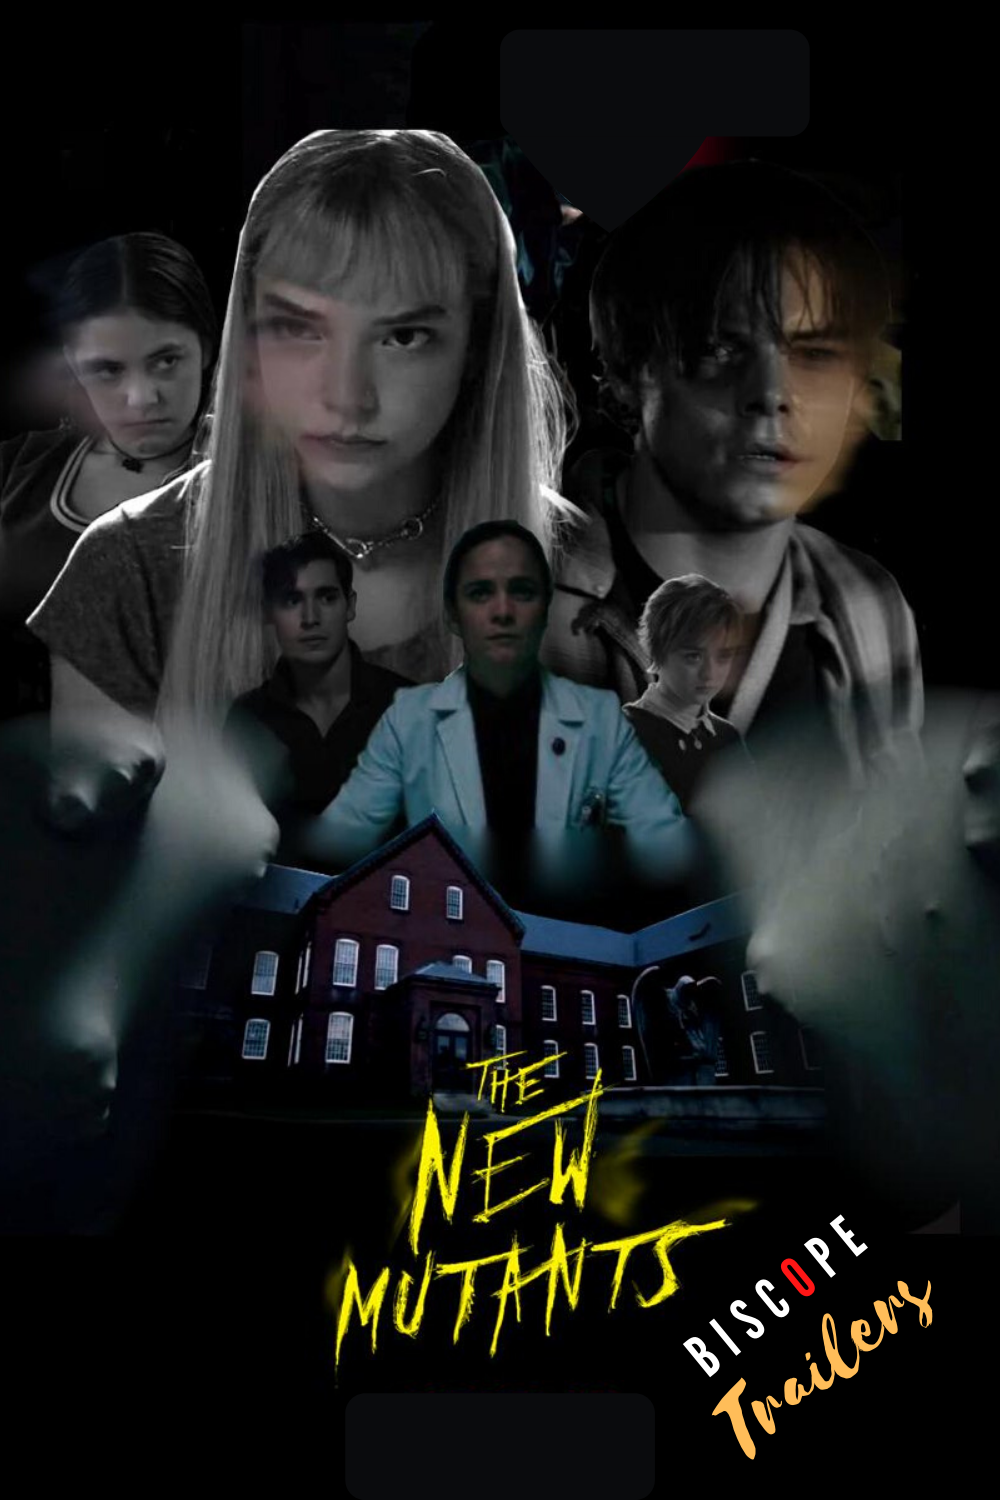 X Men The New Mutants In 2020 New Mutants Movie The New Mutants Streaming Movies